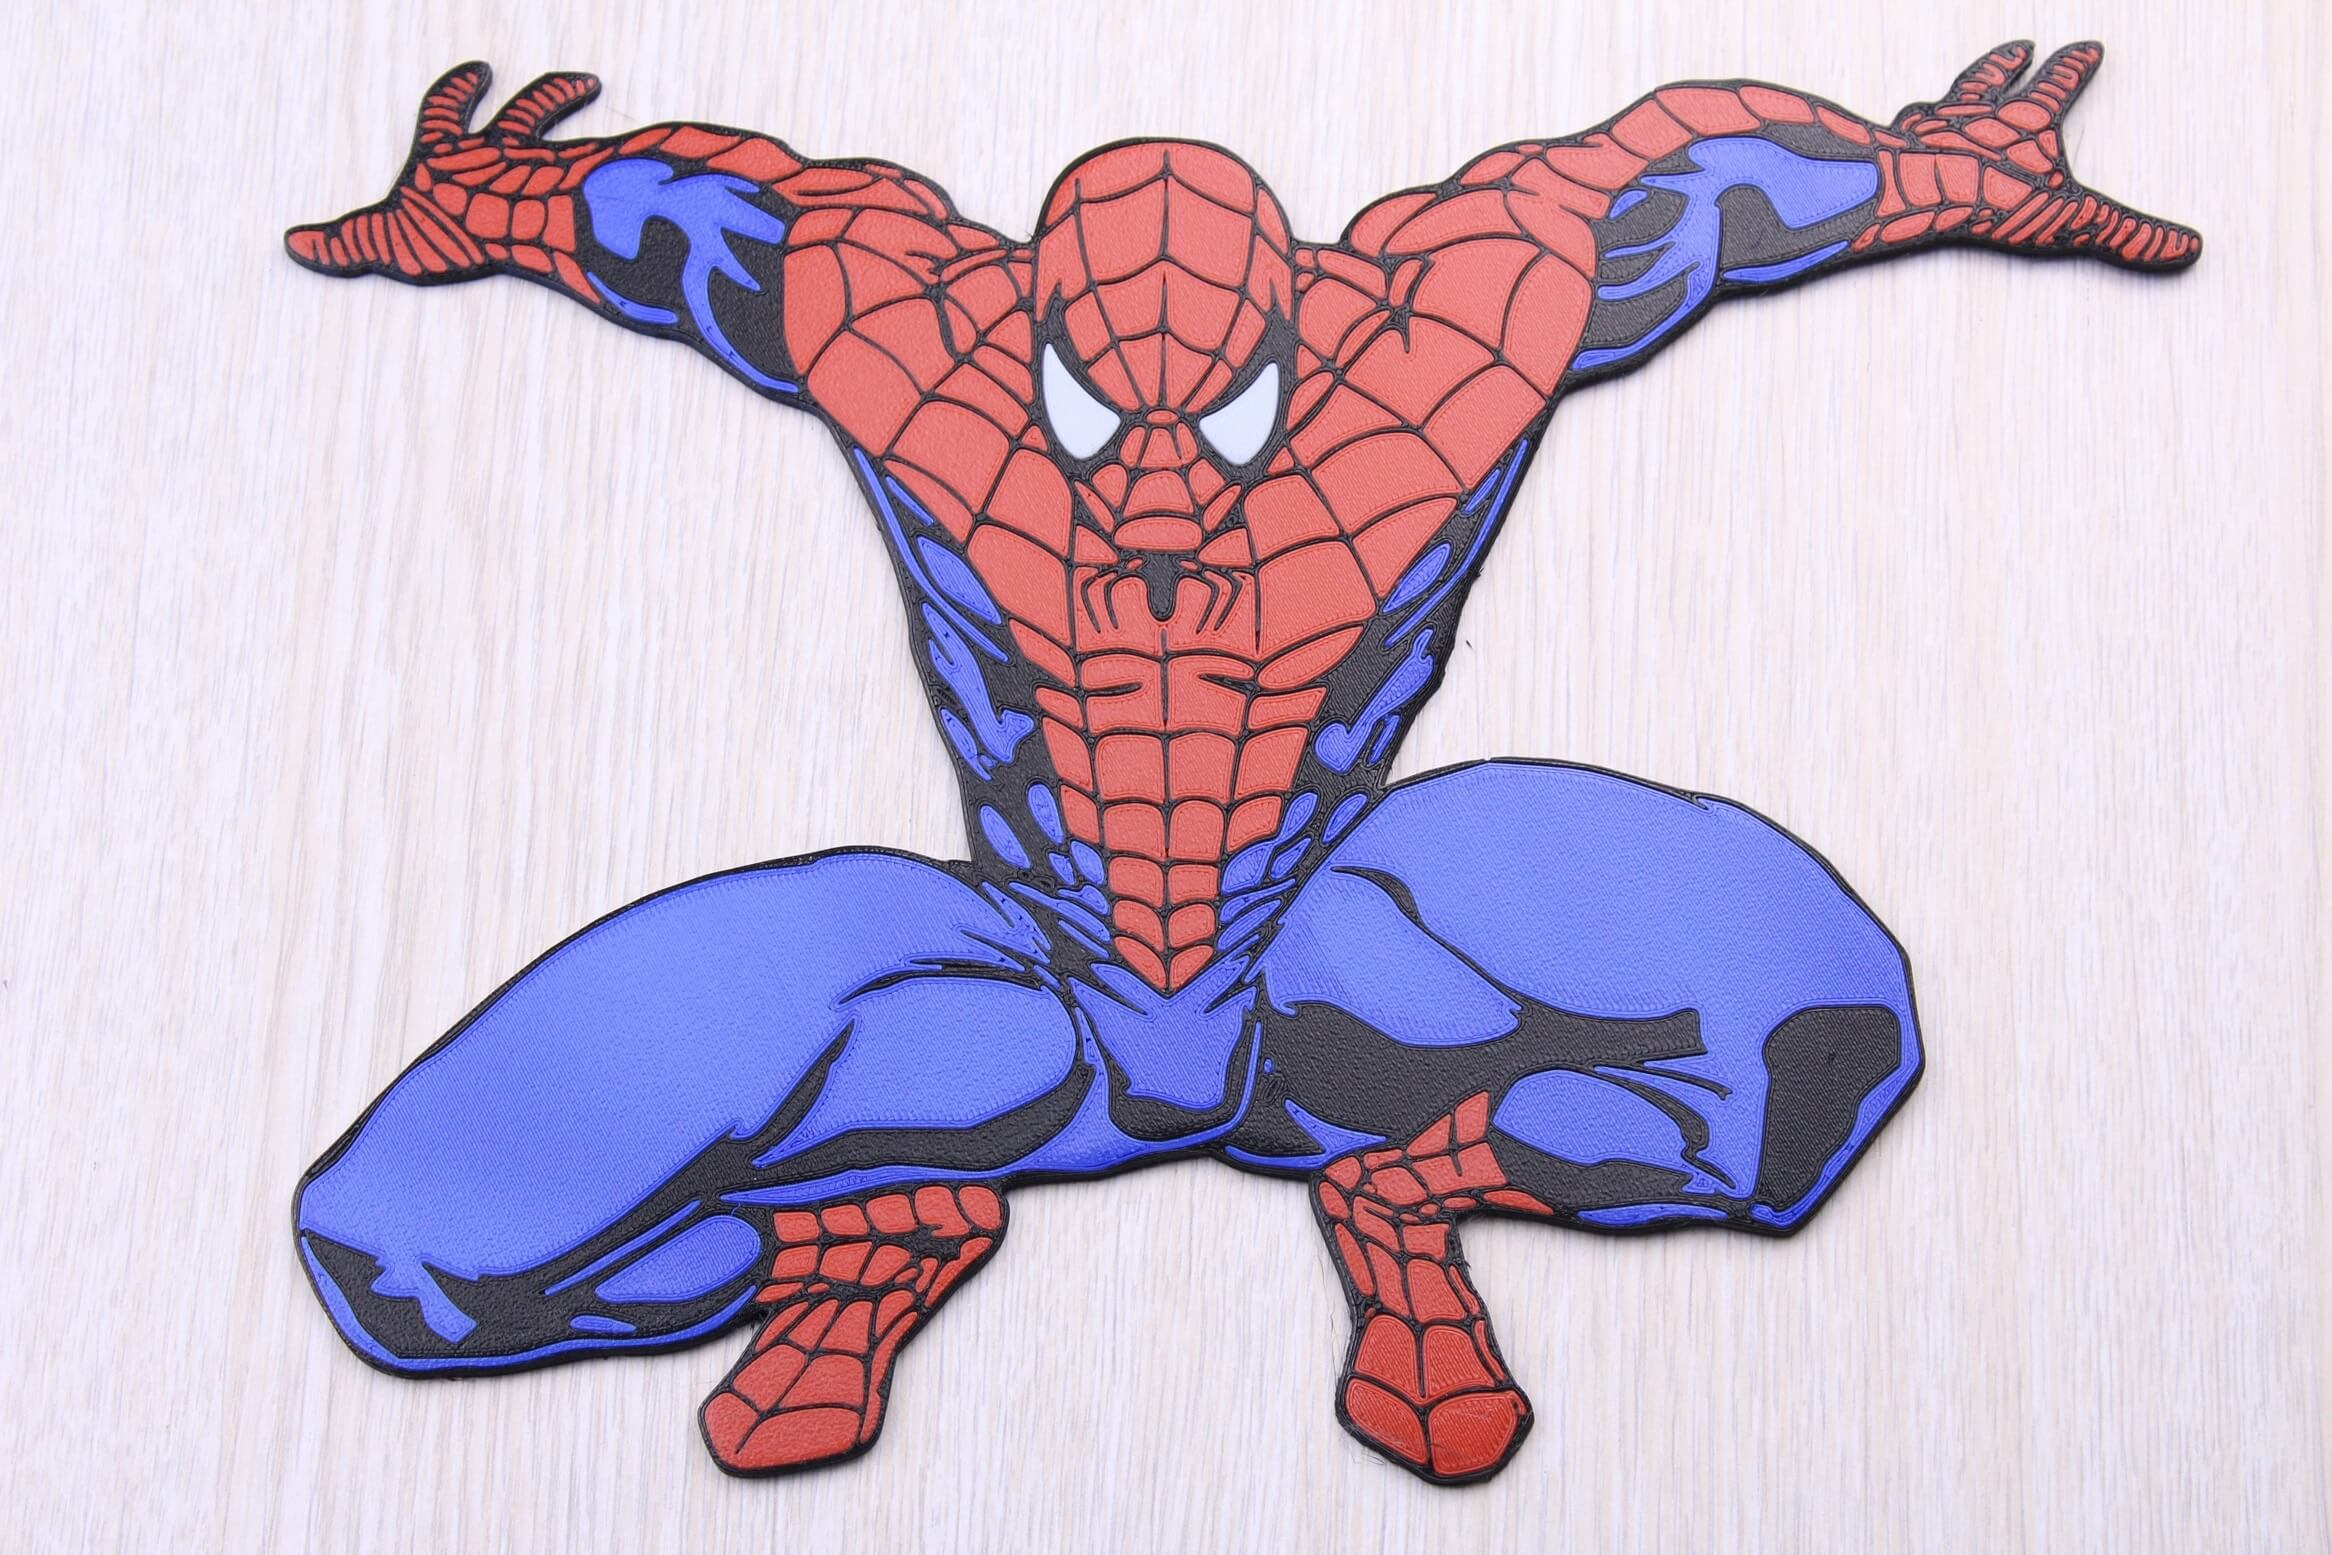 Spiderman Multi Color 3D Print 2 | Multi-Color 3D Printing Using IdeaMaker